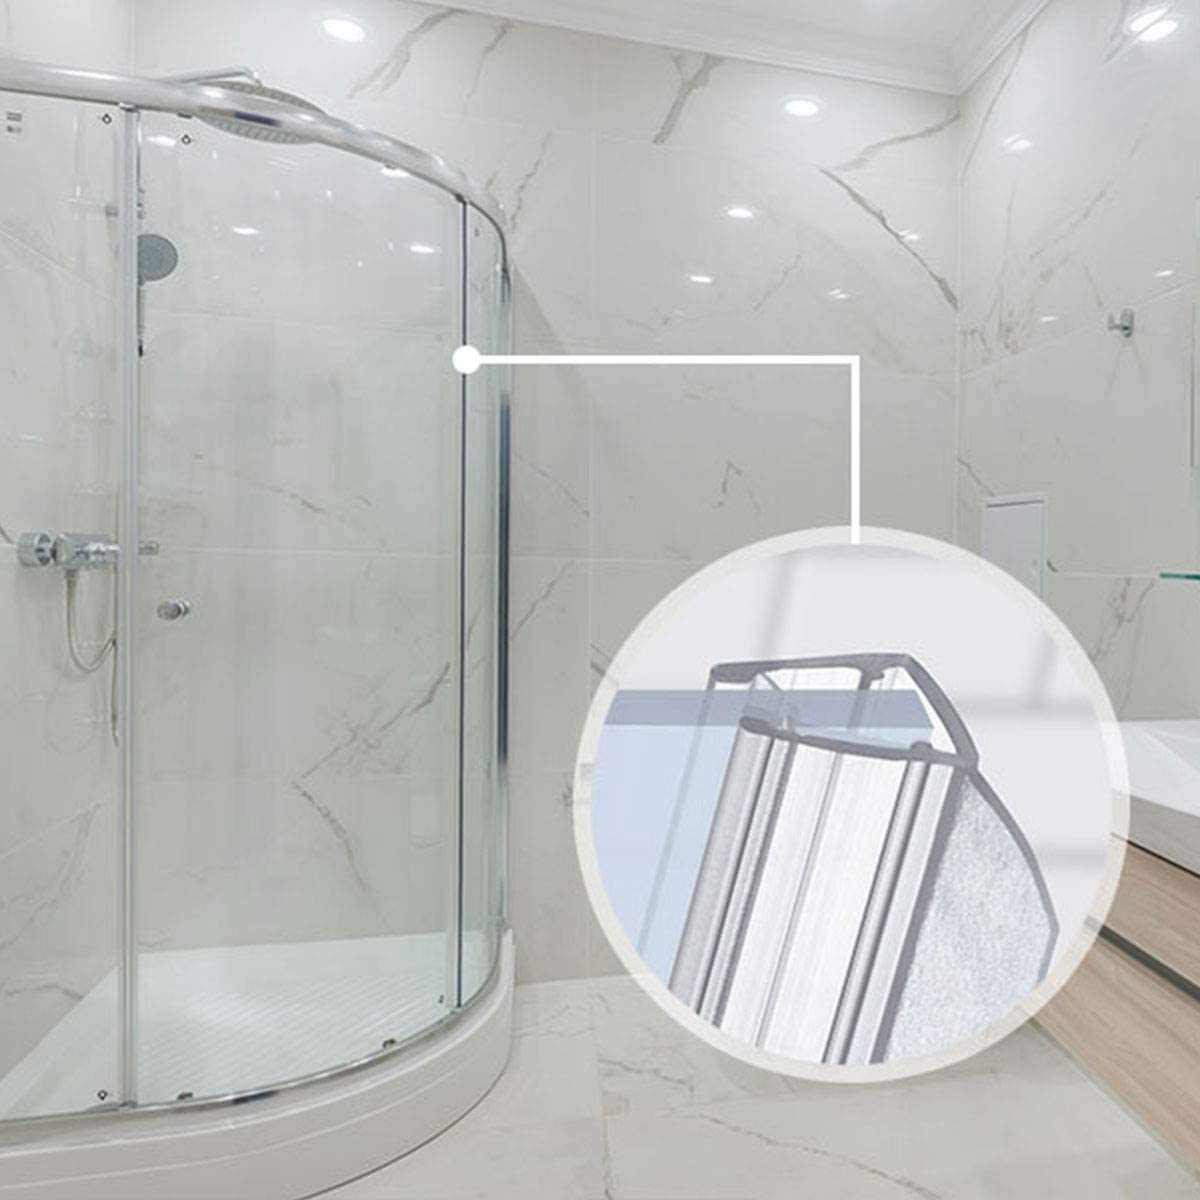 STEIGNER 30cm UK02 Curved Shower Screen Seal Suitable for Use On Glass Thicknesses of 6//7 8 mm Stops Leaks and Creates A Barrier for Round Enclosures